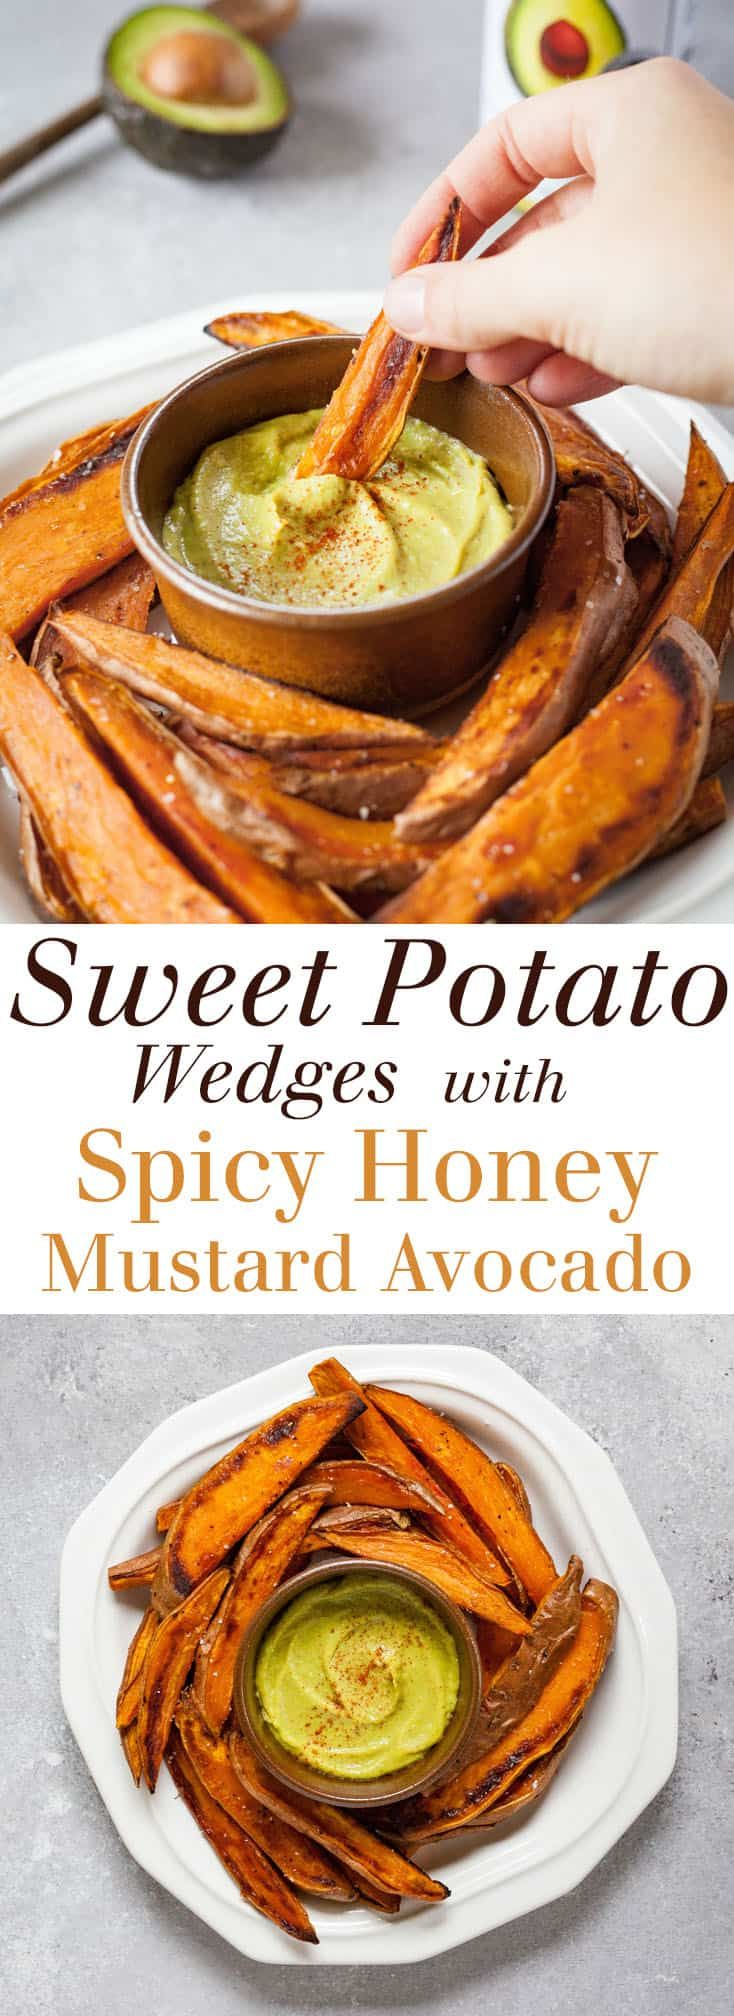 Sweet Potato Wedges with Spicy Honey Mustard Avocado Dip